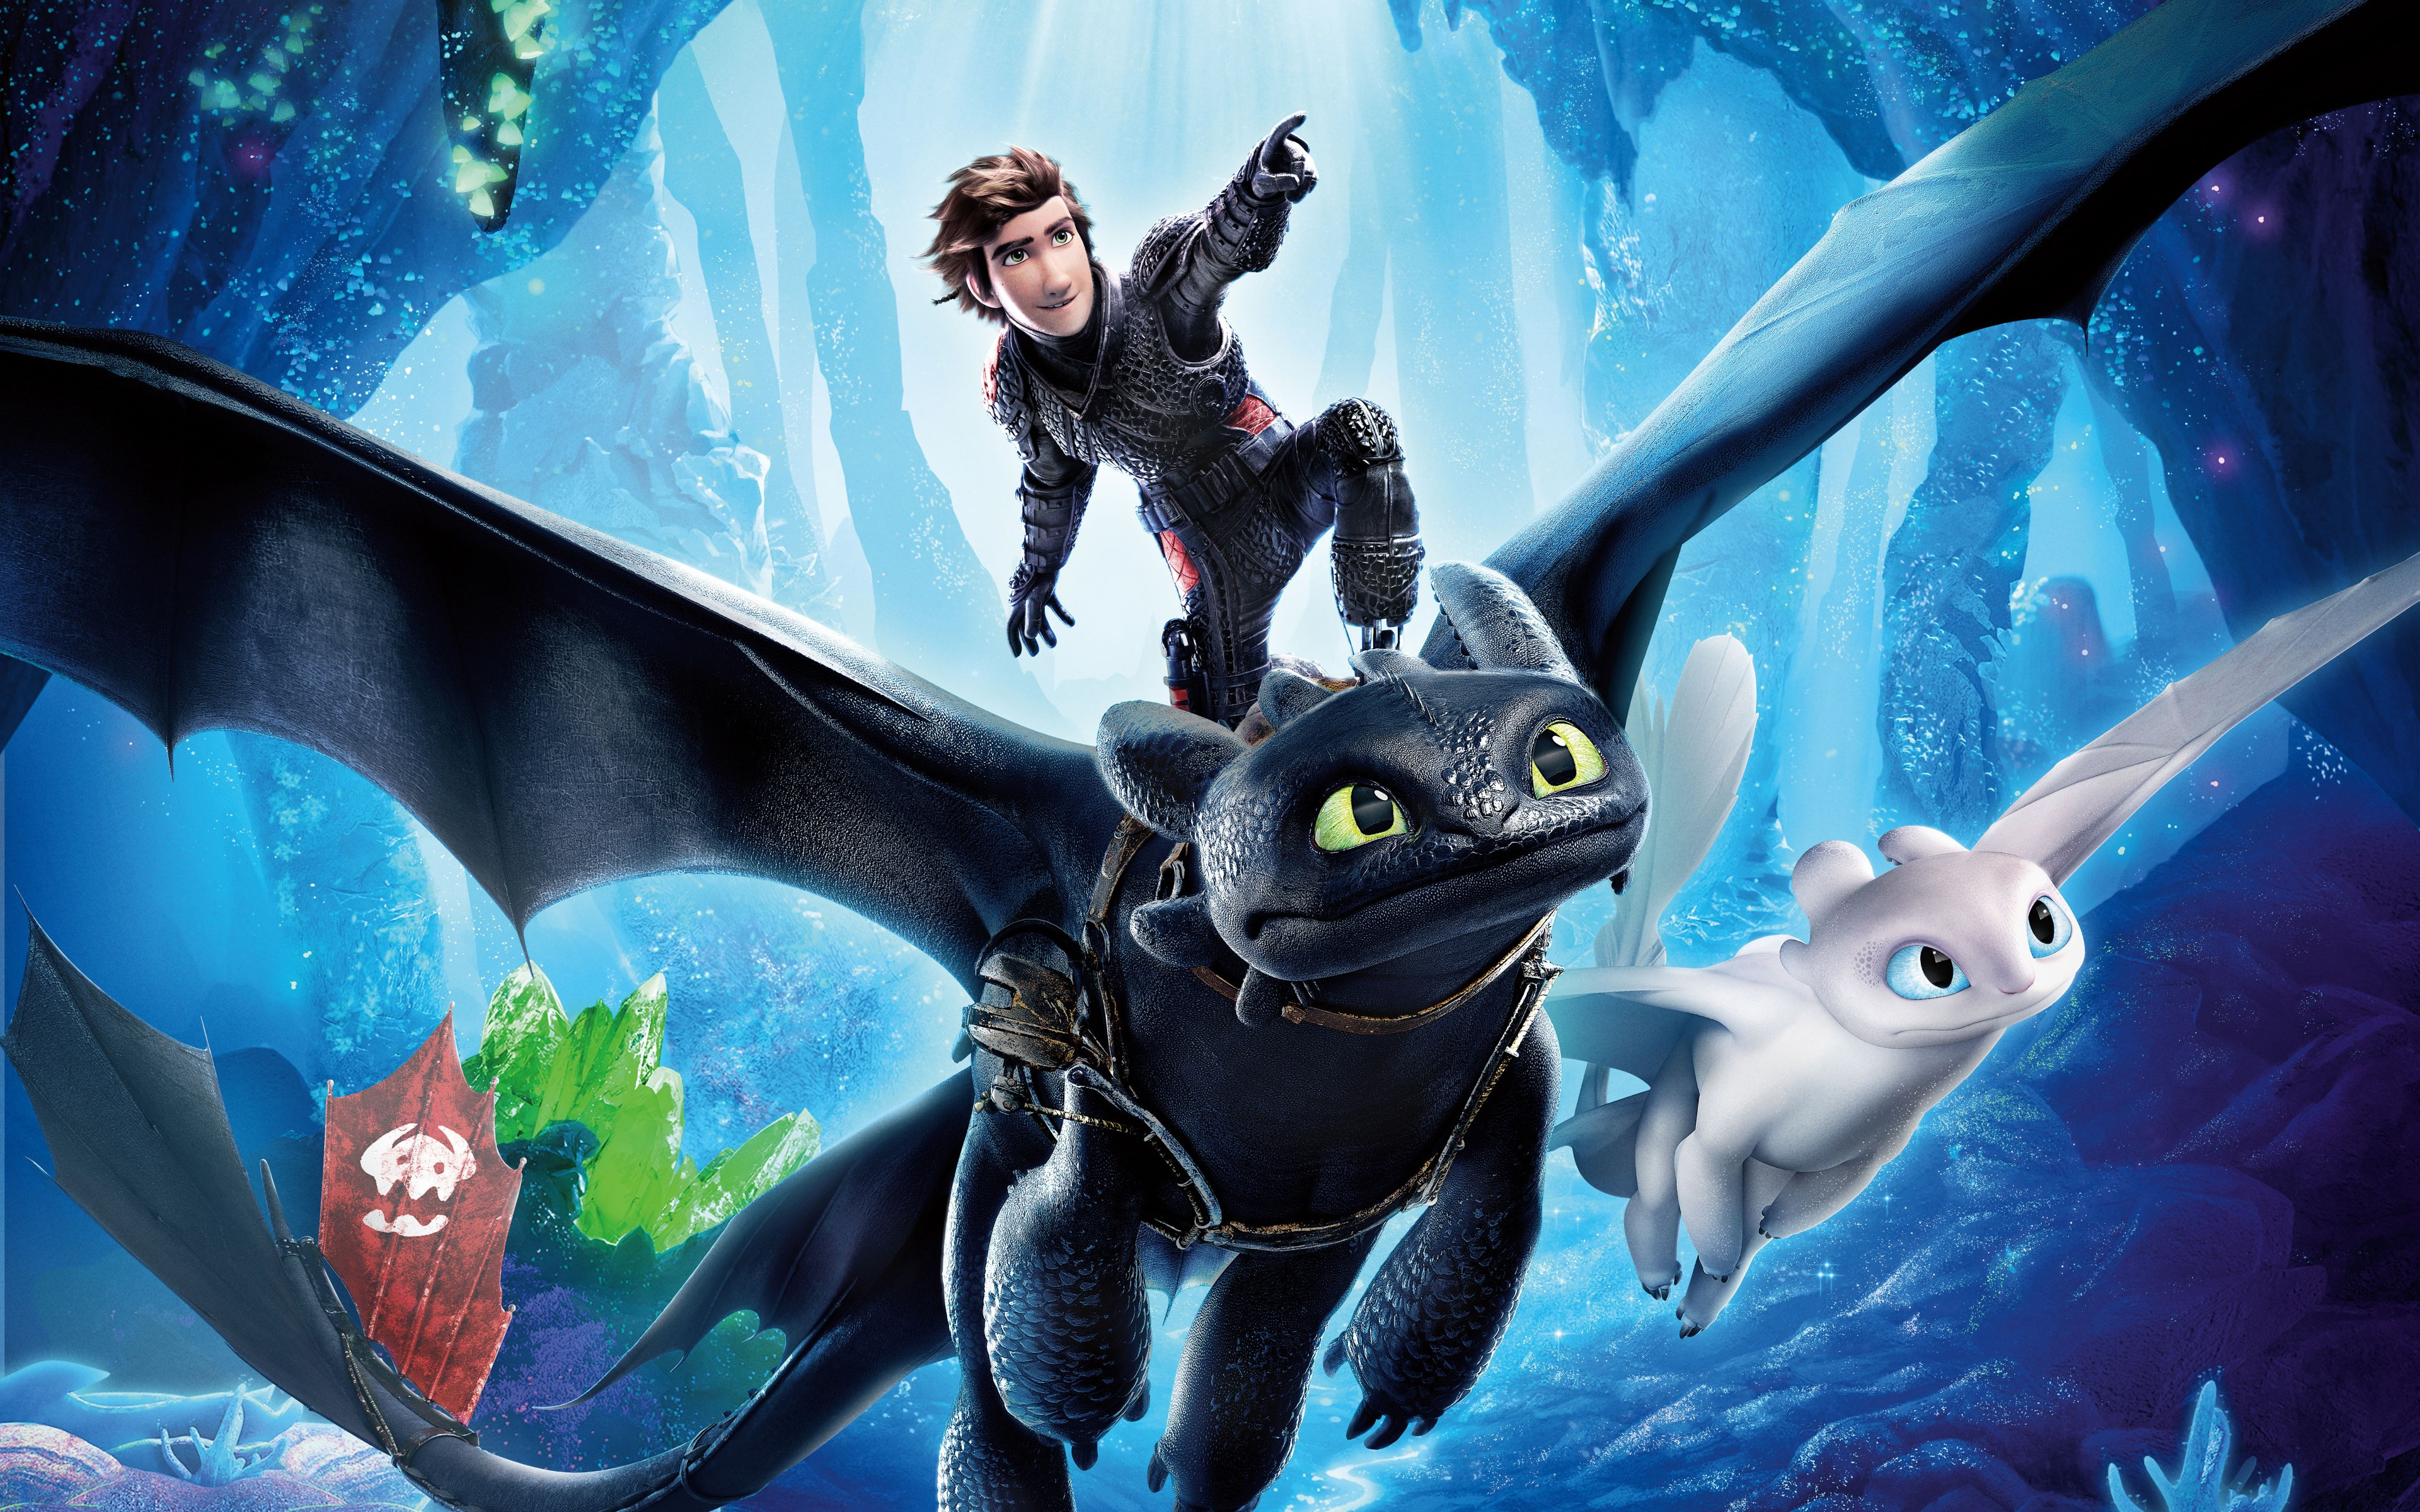 How to Train Your Dragon 2019 wallpaper 3840x2400